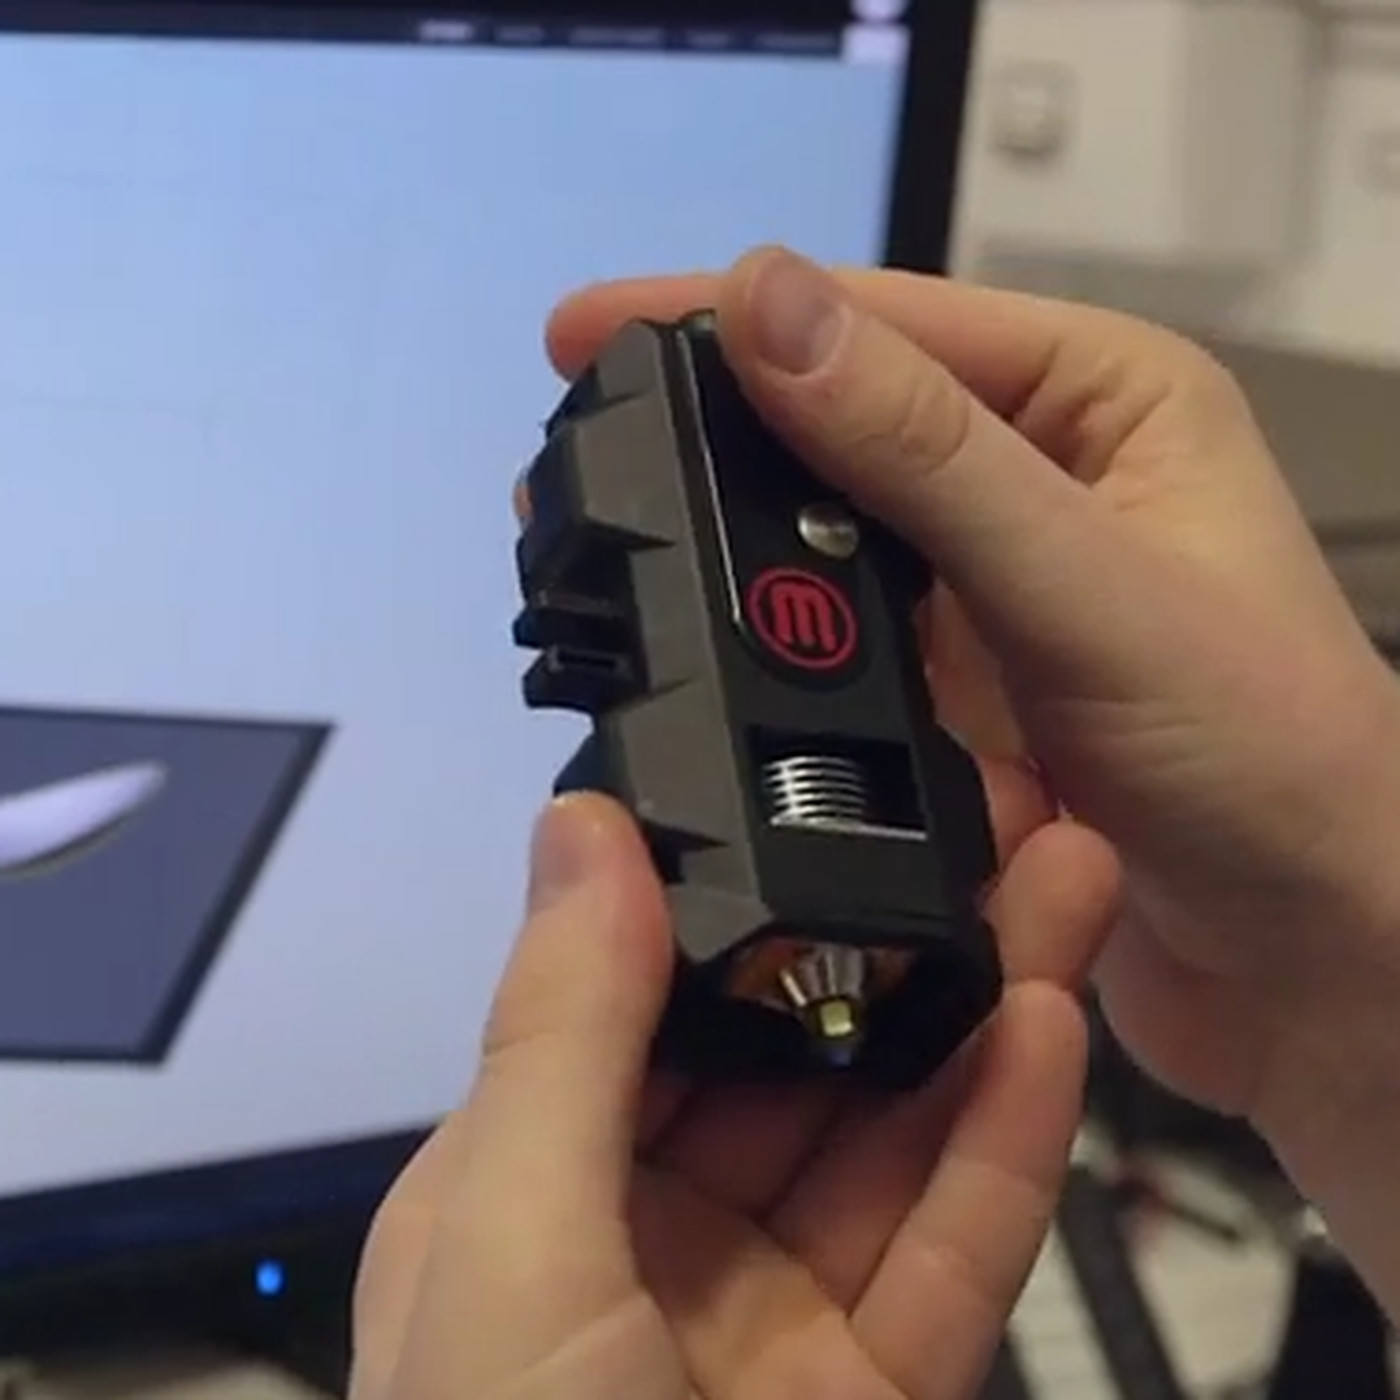 MakerBot is replacing its most ill-fated 3D printing product - The Verge